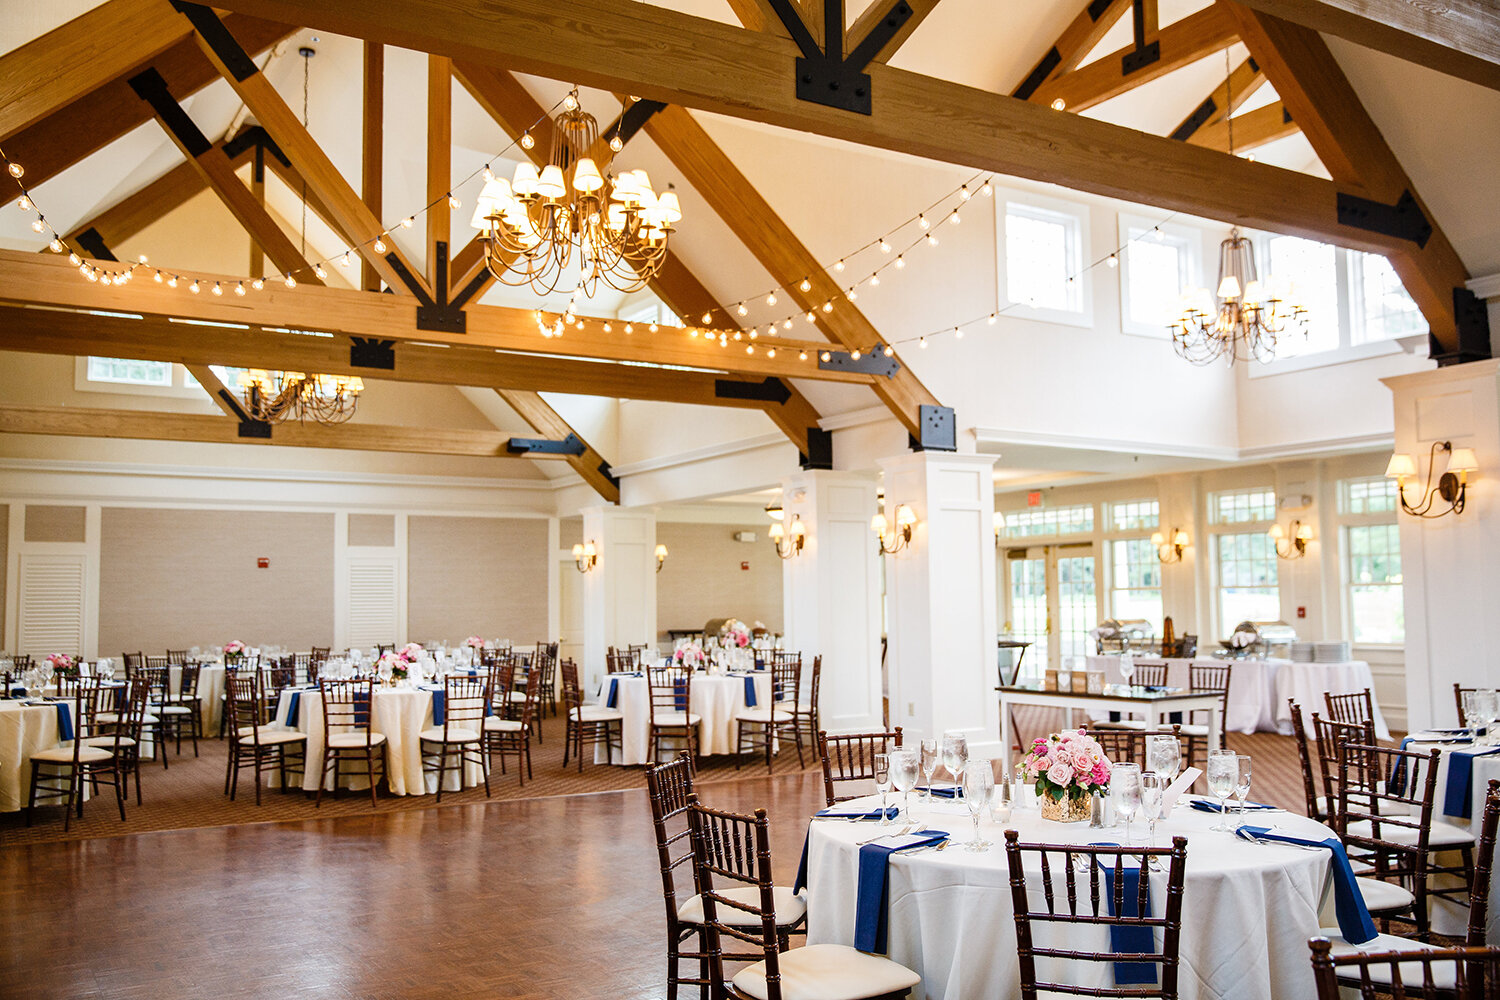 Pinehills-Pavilion-Private-Events.jpg